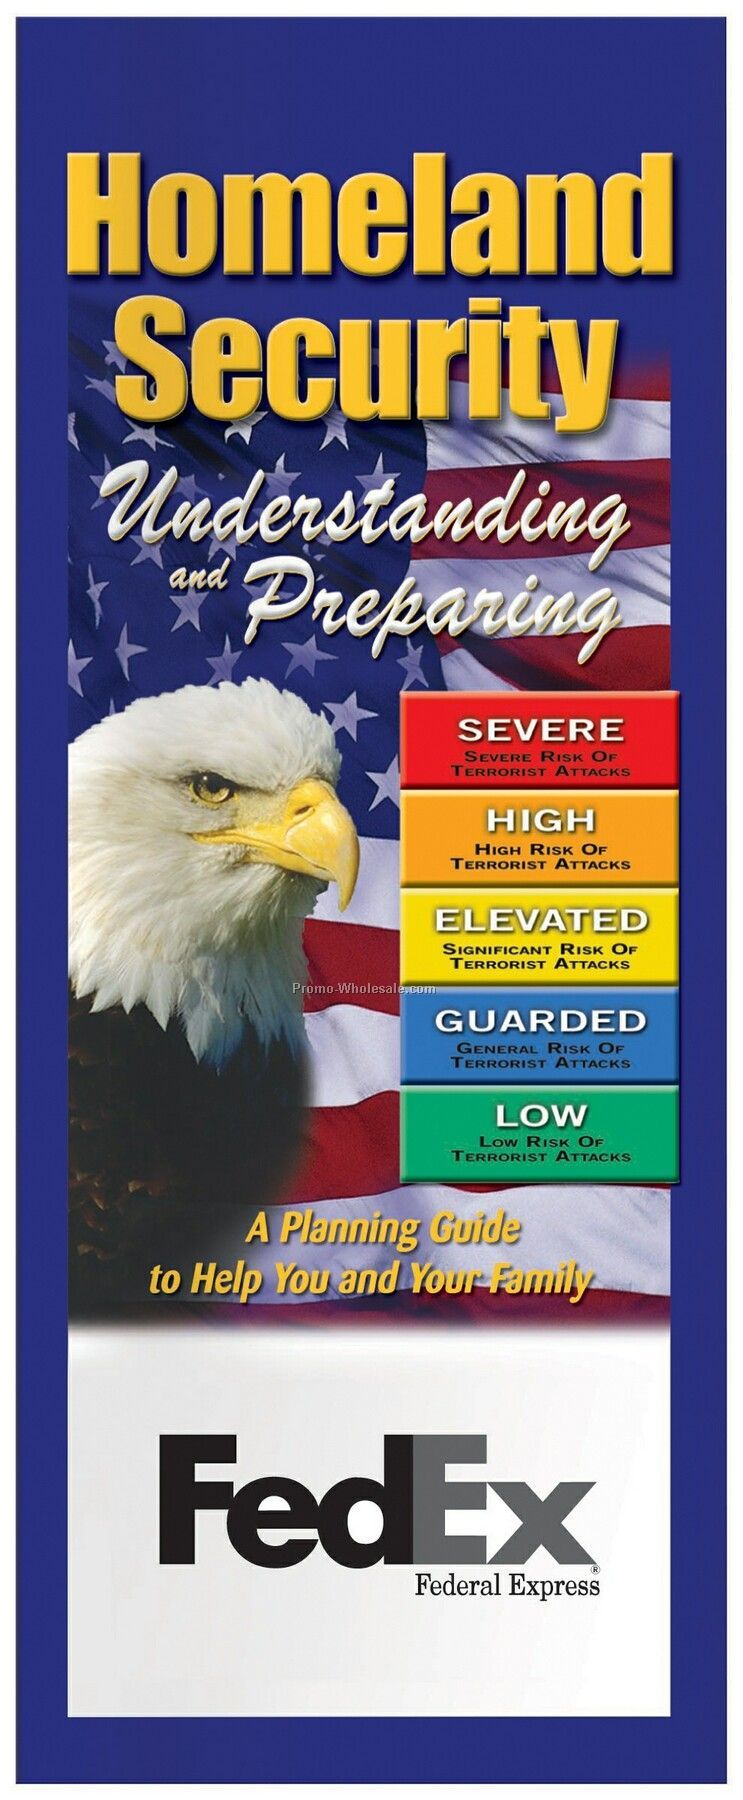 Pillowline Homeland Security Pocket Pro Brochure